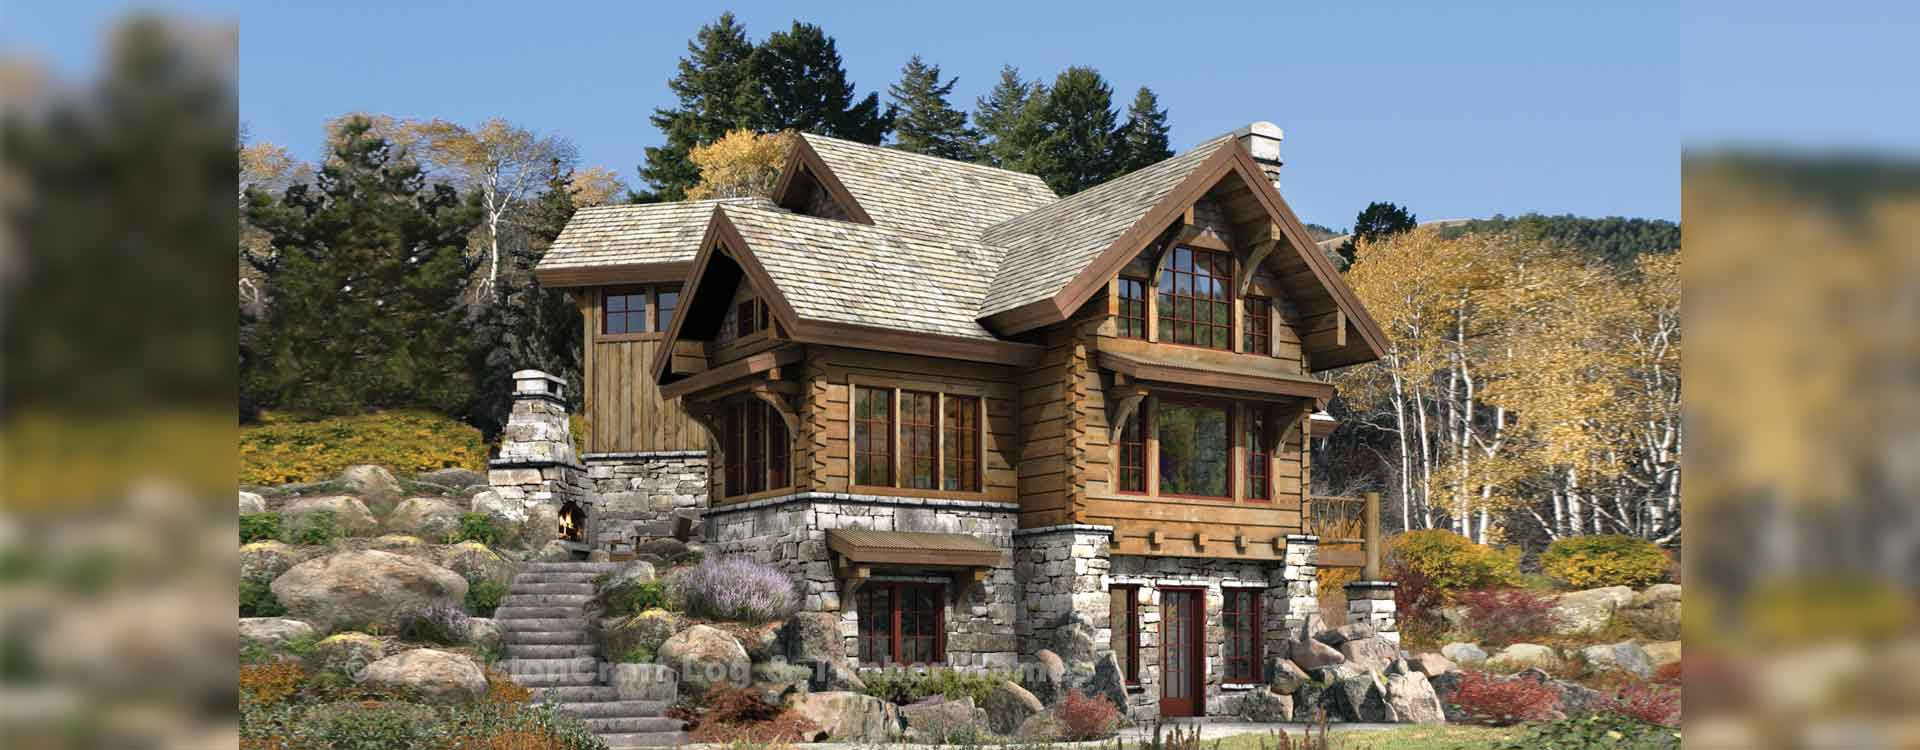 Targhee log home plan for Timber log home plans